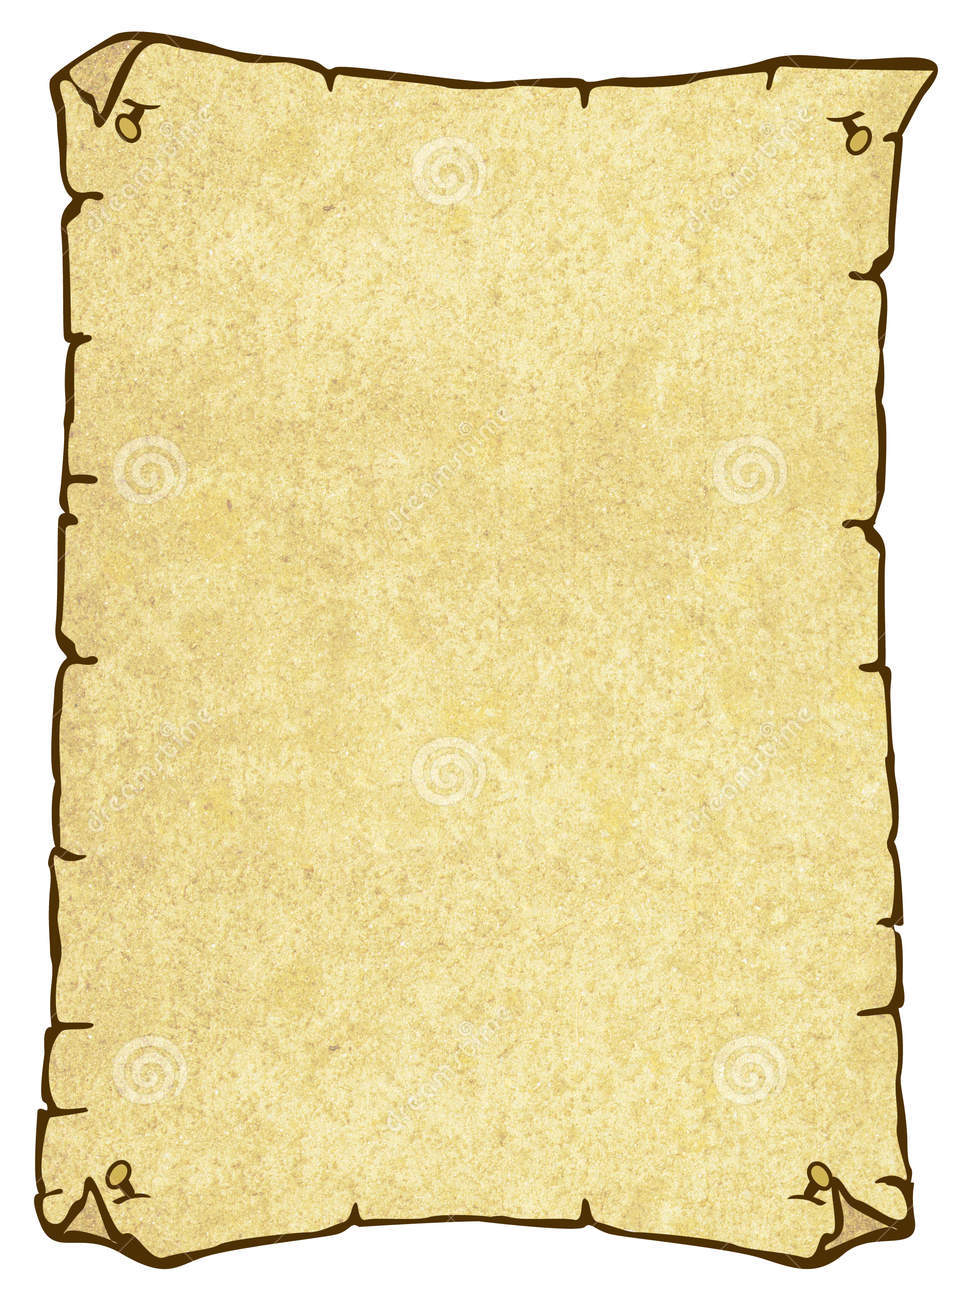 66+ Wanted Poster Clip Art.